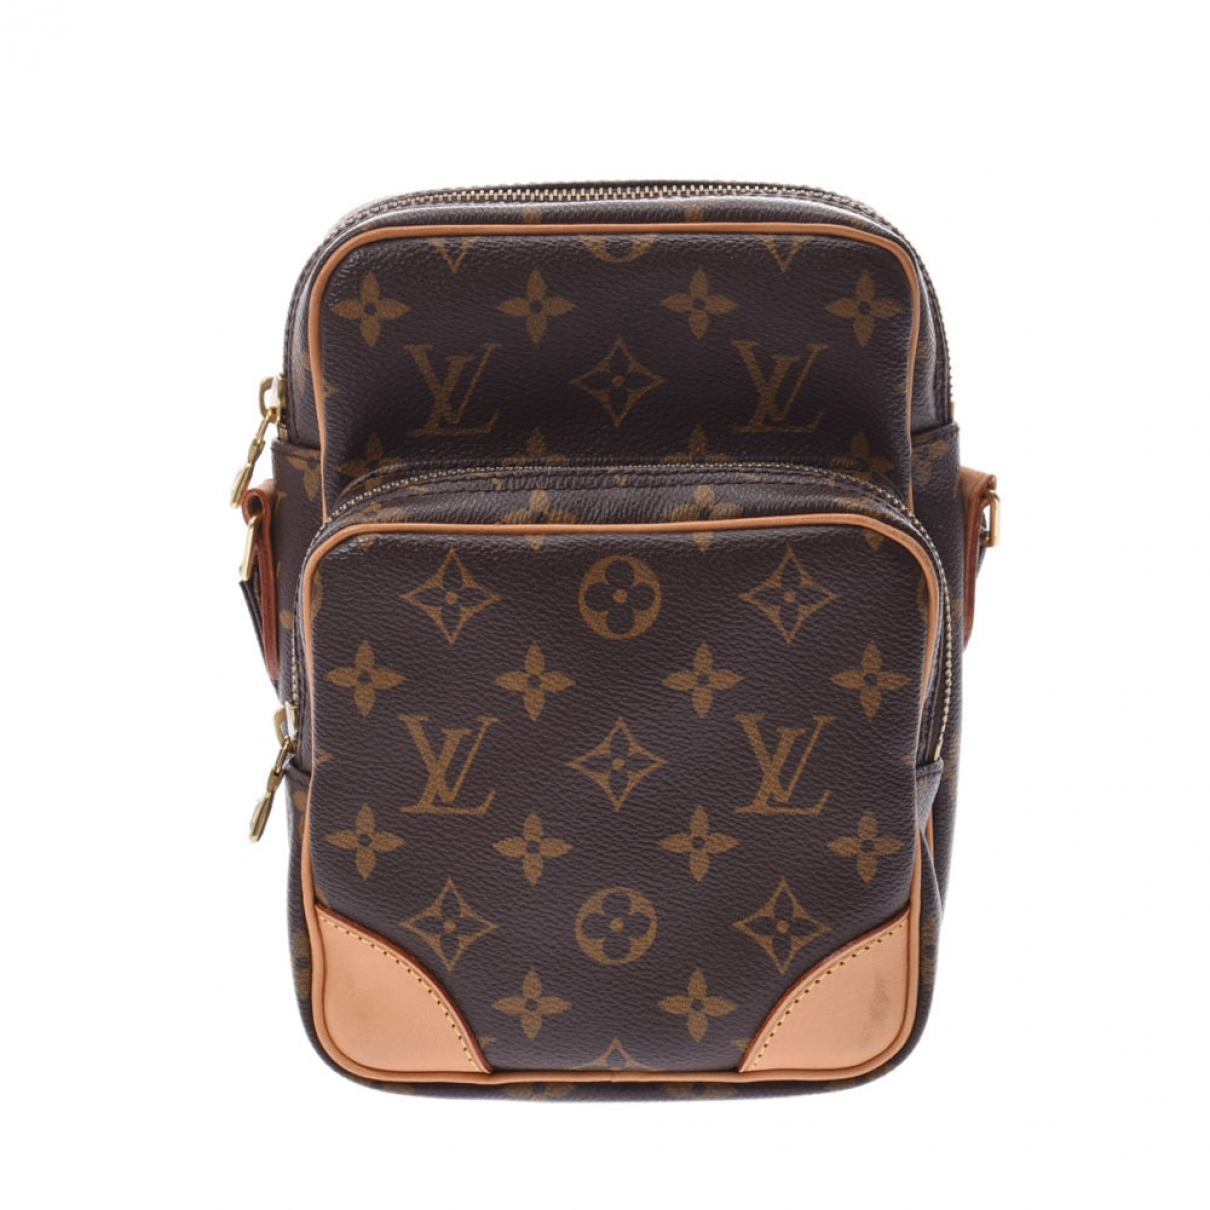 Pochette Amazon de Lona Louis Vuitton